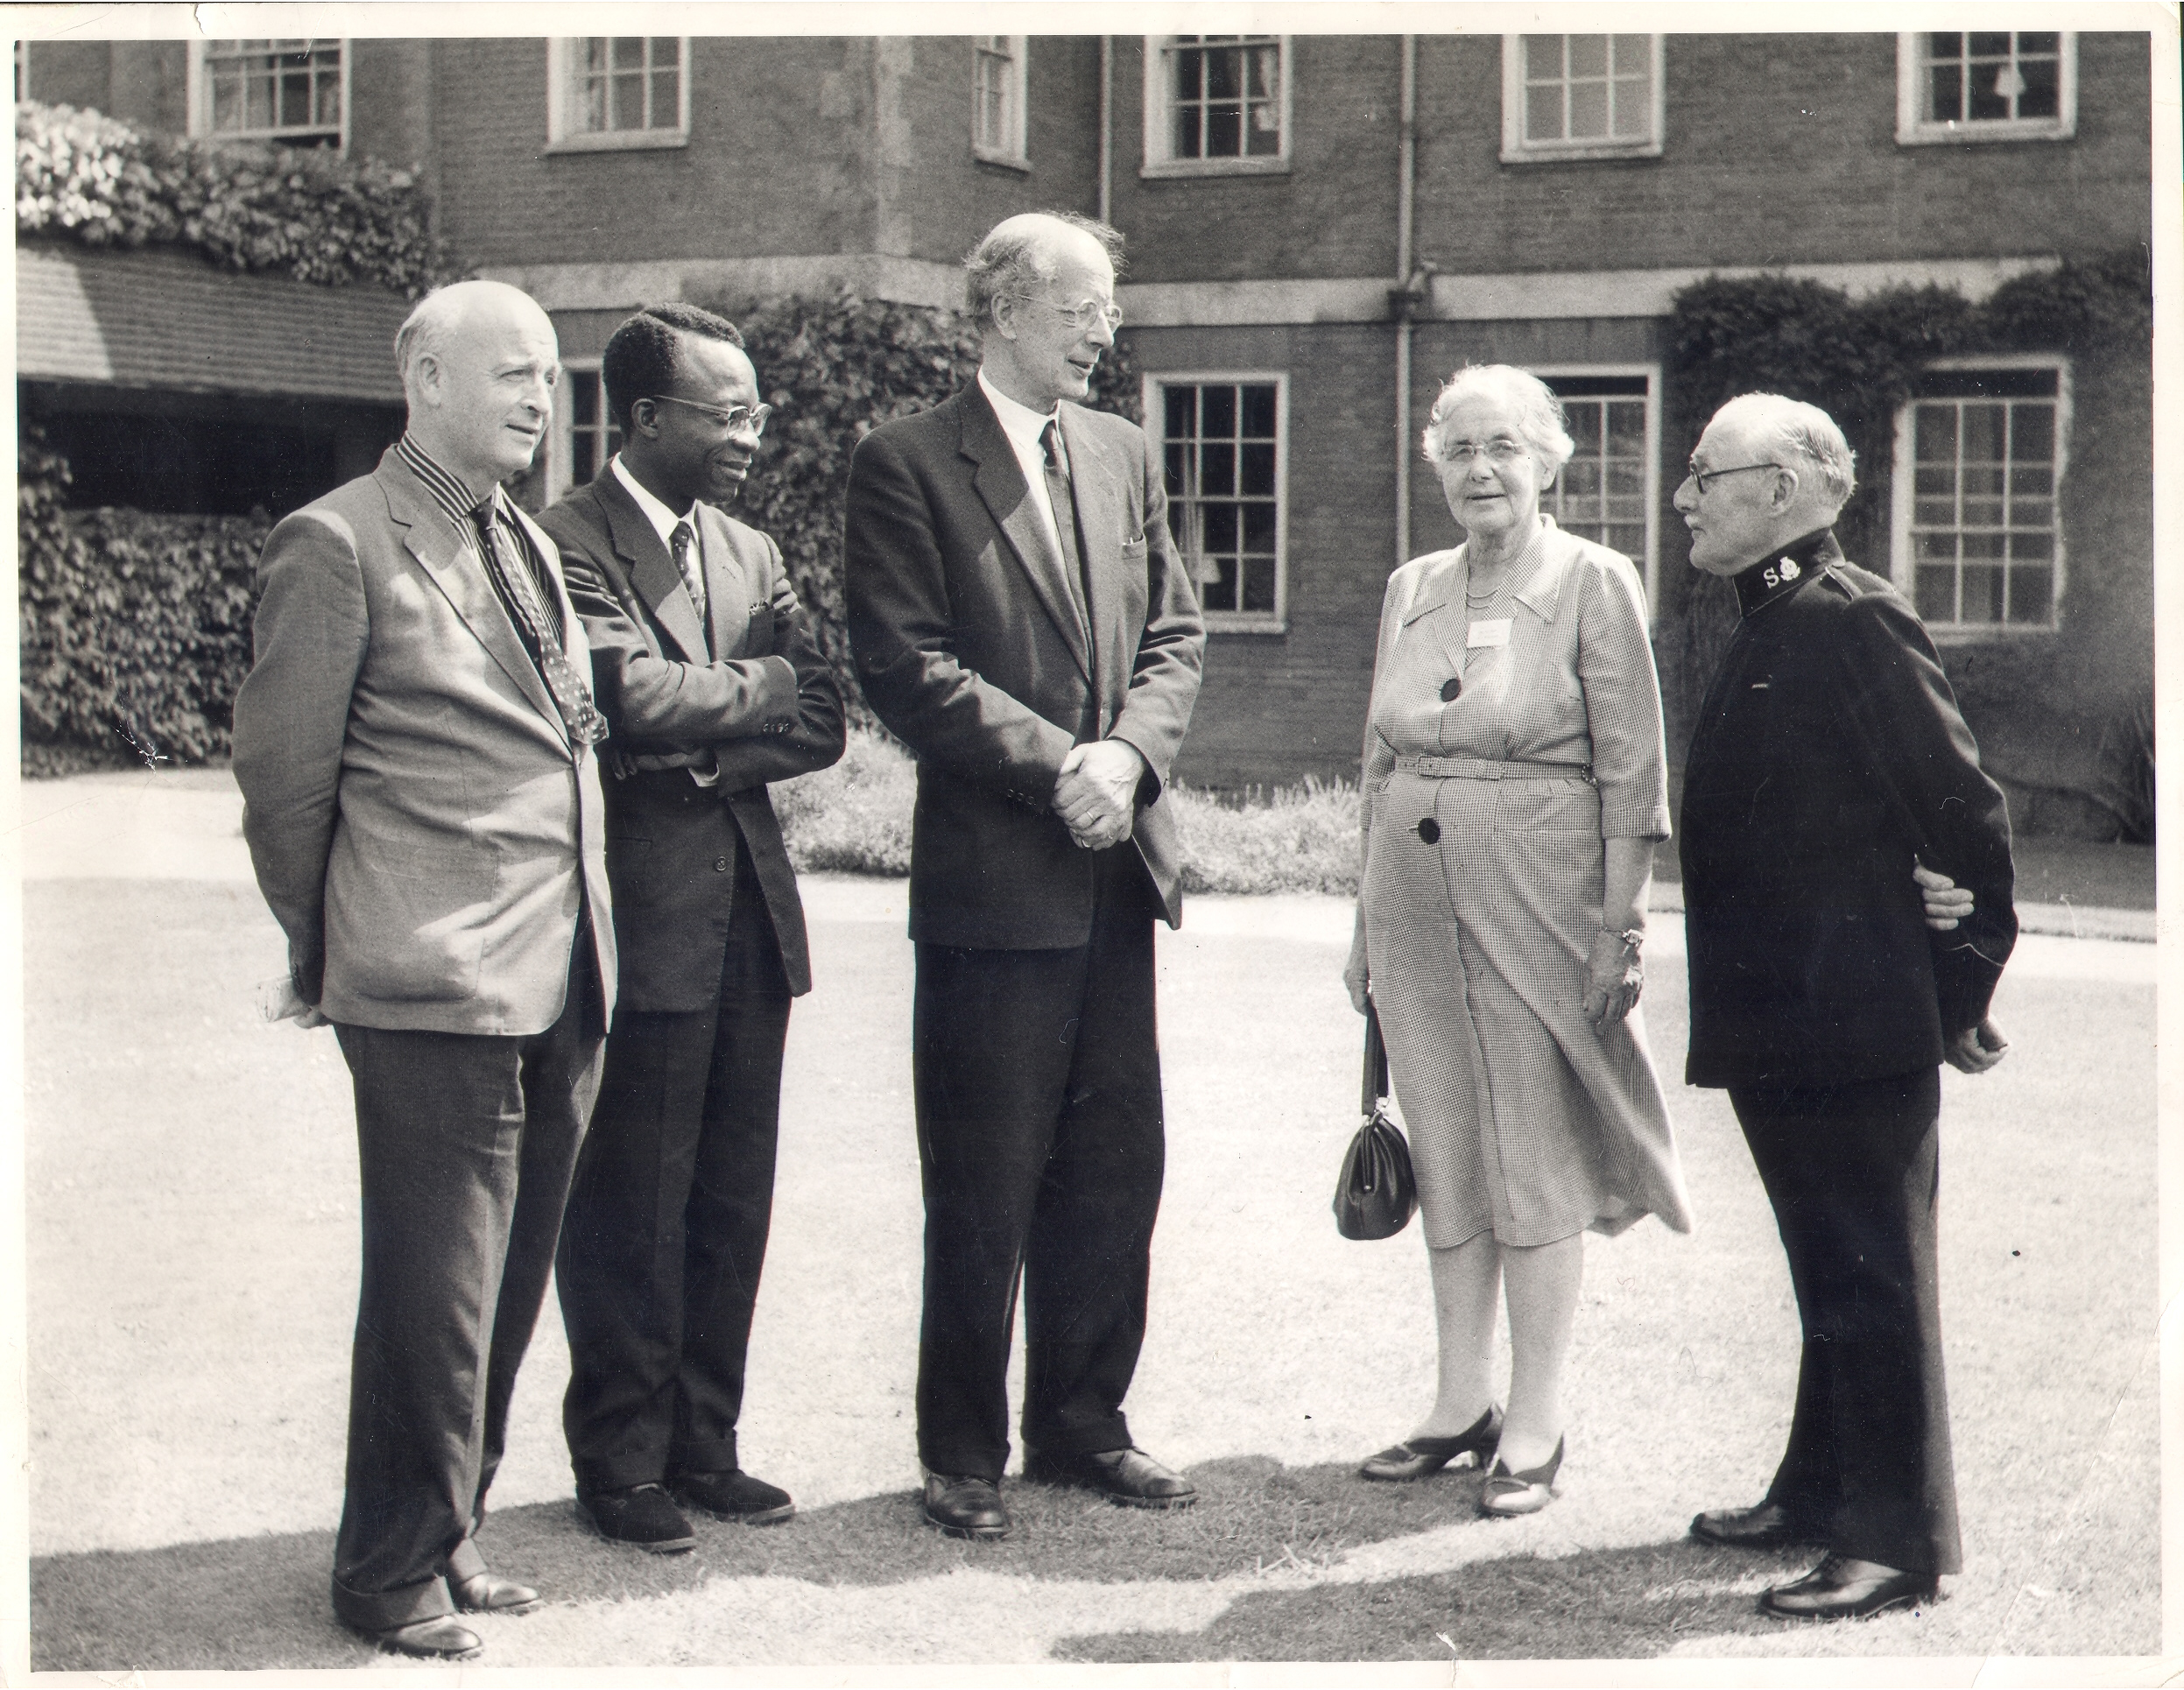 Cecil Jackson-Cole (left) and Canon T. R. Milford (centre) at the Oxfam Summer Conference, 1962. Oxfam Archive, Bodleian Libraries